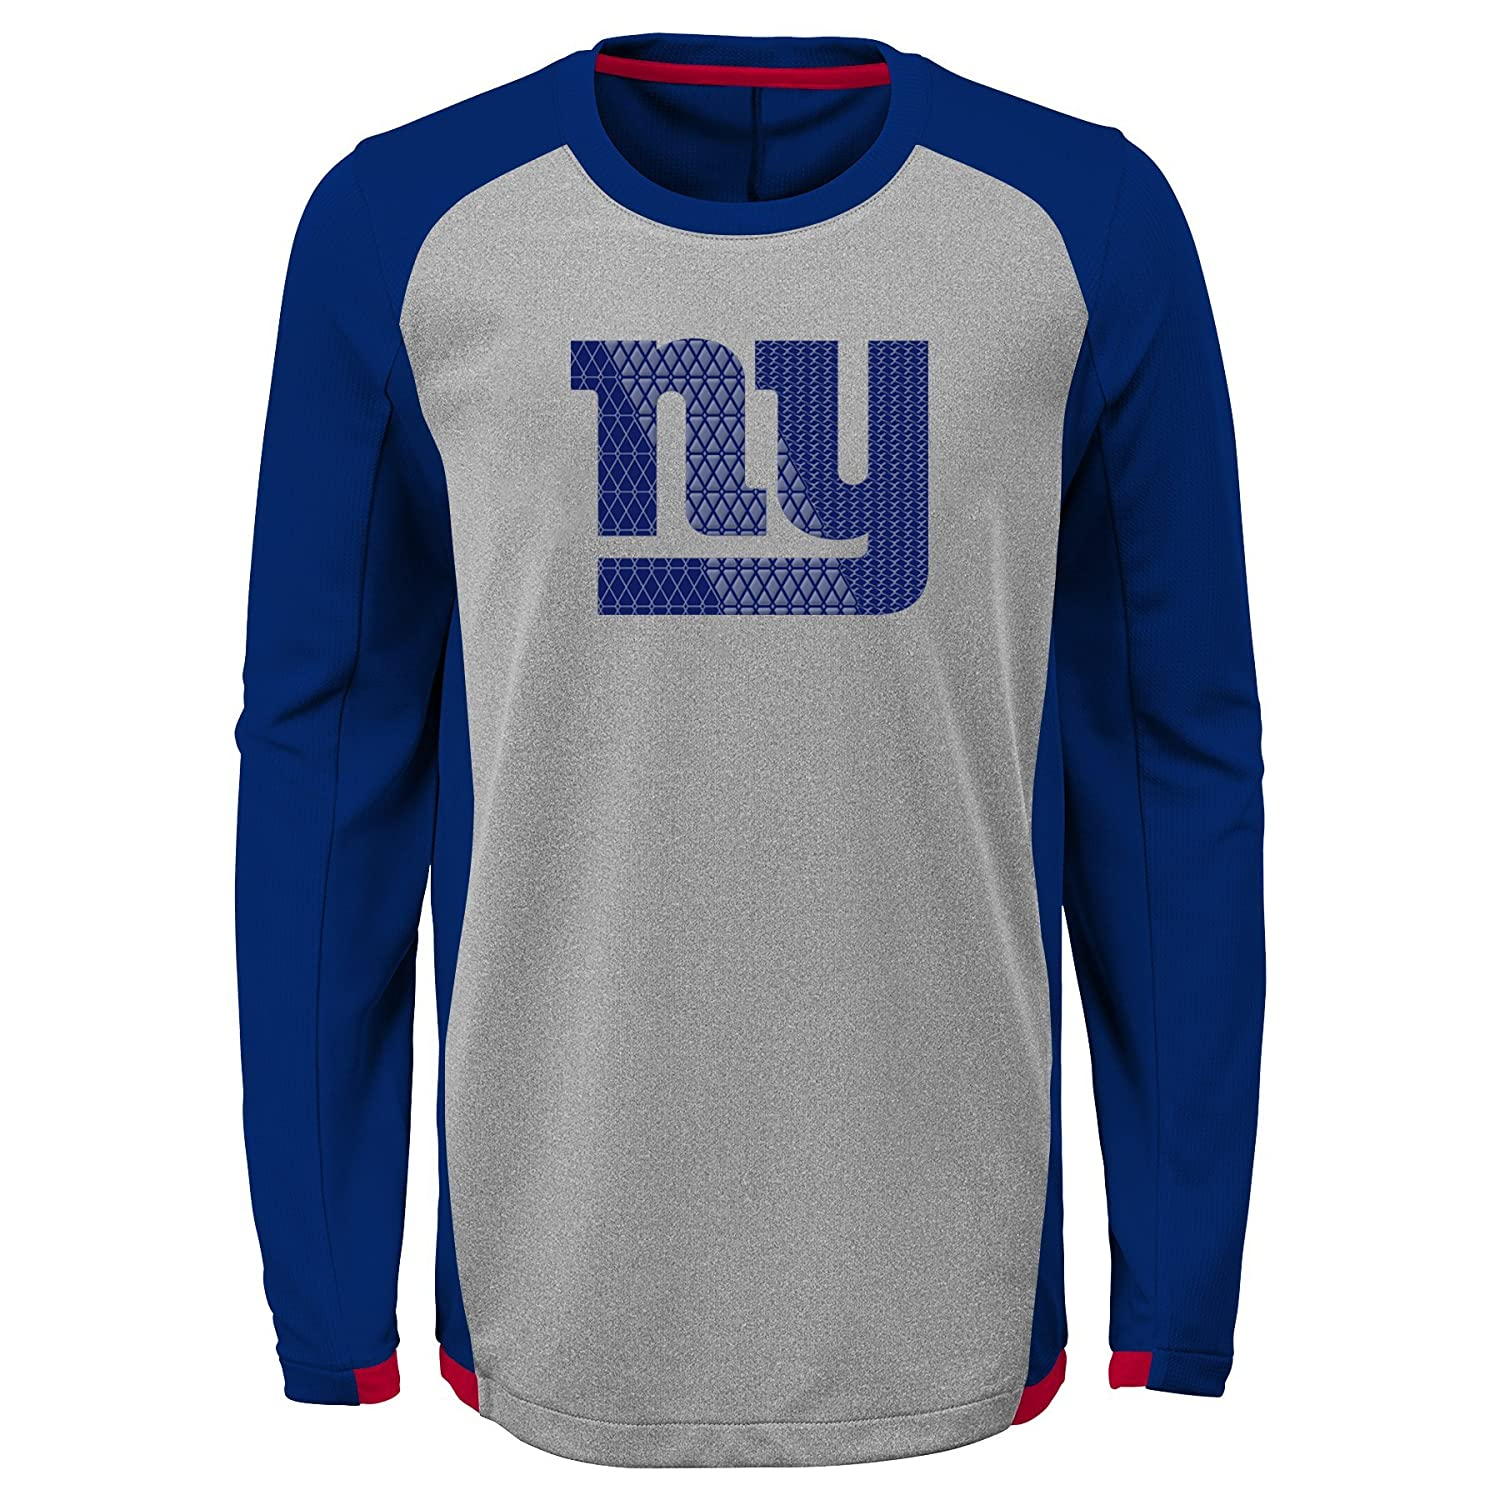 Outerstuff NFL New York Giants Kids /& Youth Boys Mainframe Performance Tee Dark Royal Youth Large 14-16